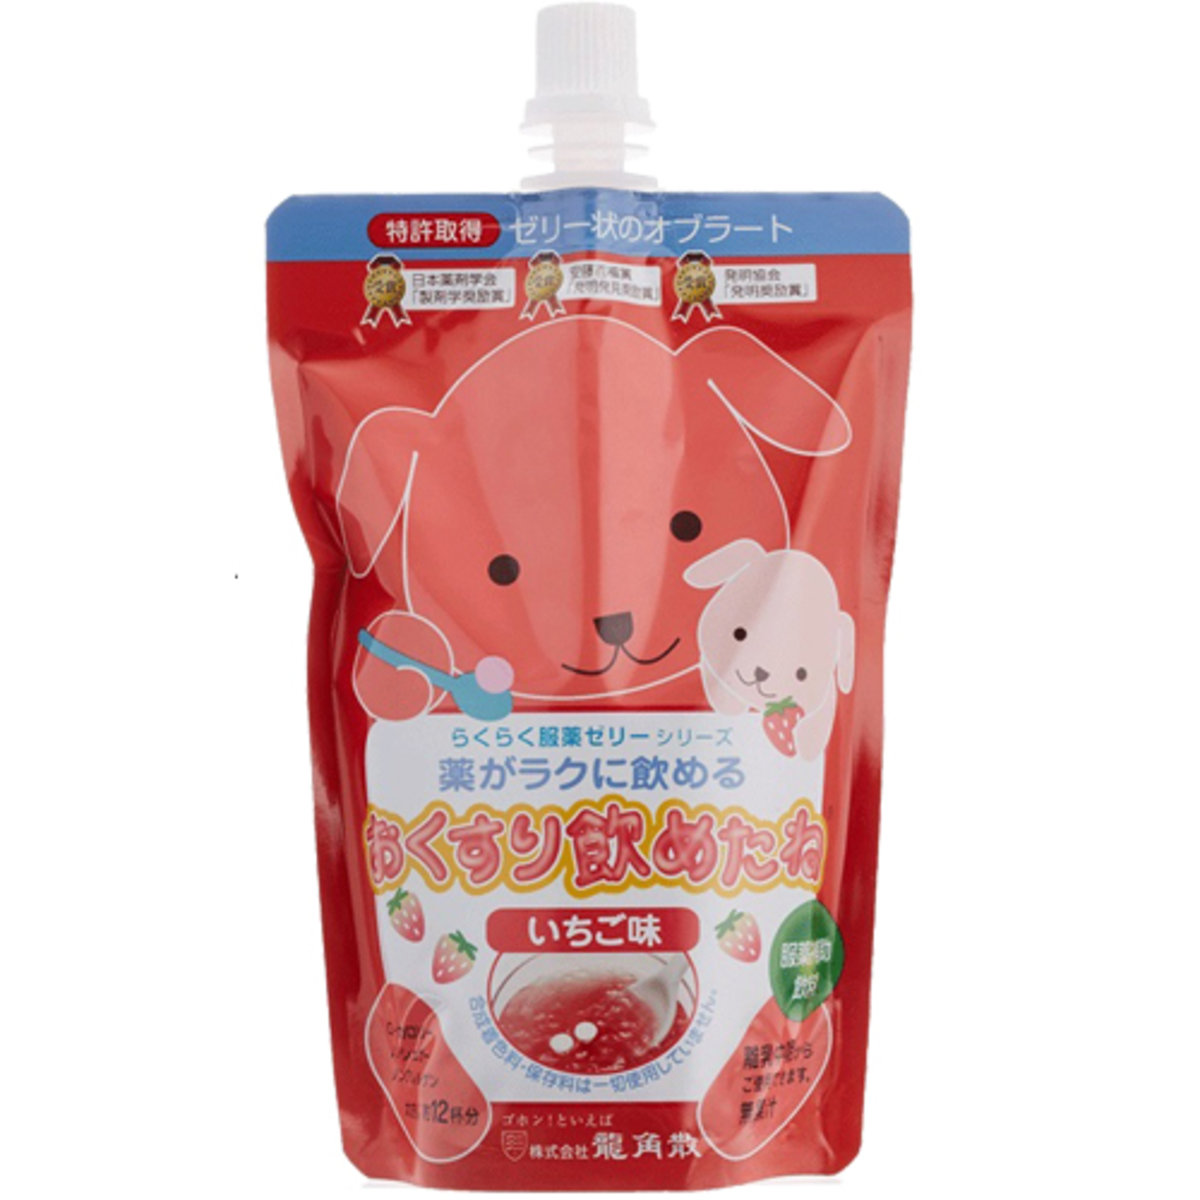 Swallowing Aid Jelly (Magic Jelly) for ChildrenStrawberry Flavor 200g